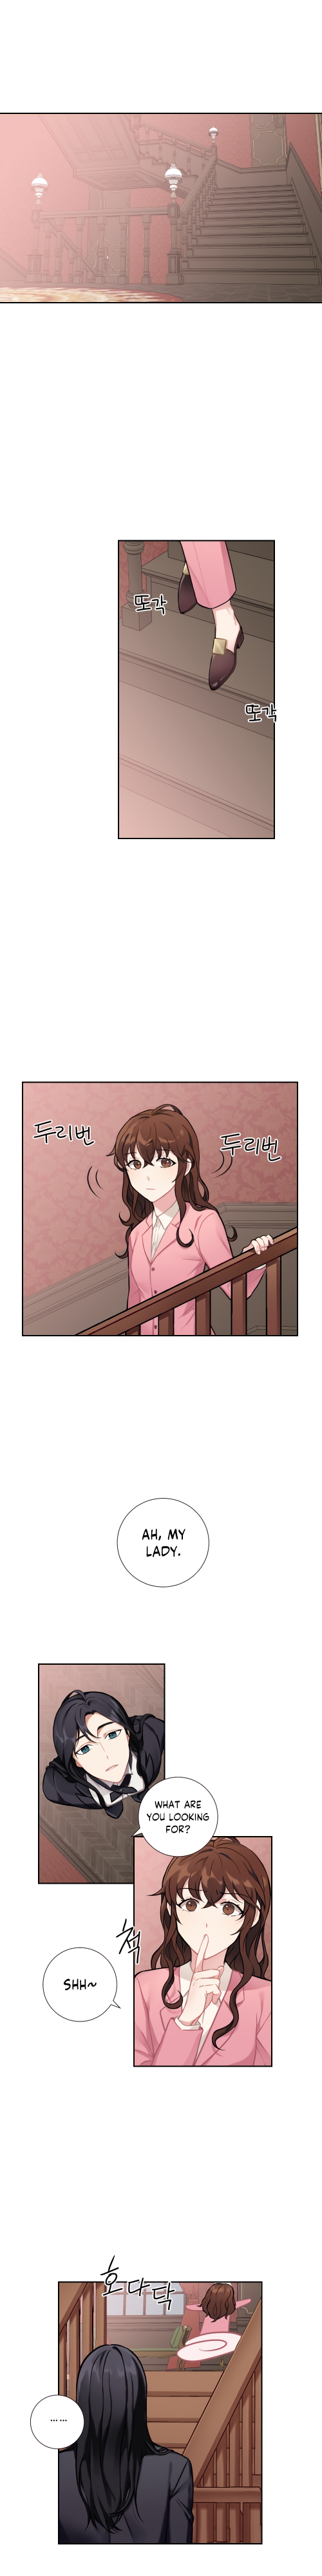 Lady & Maid - chapter 6 - #3